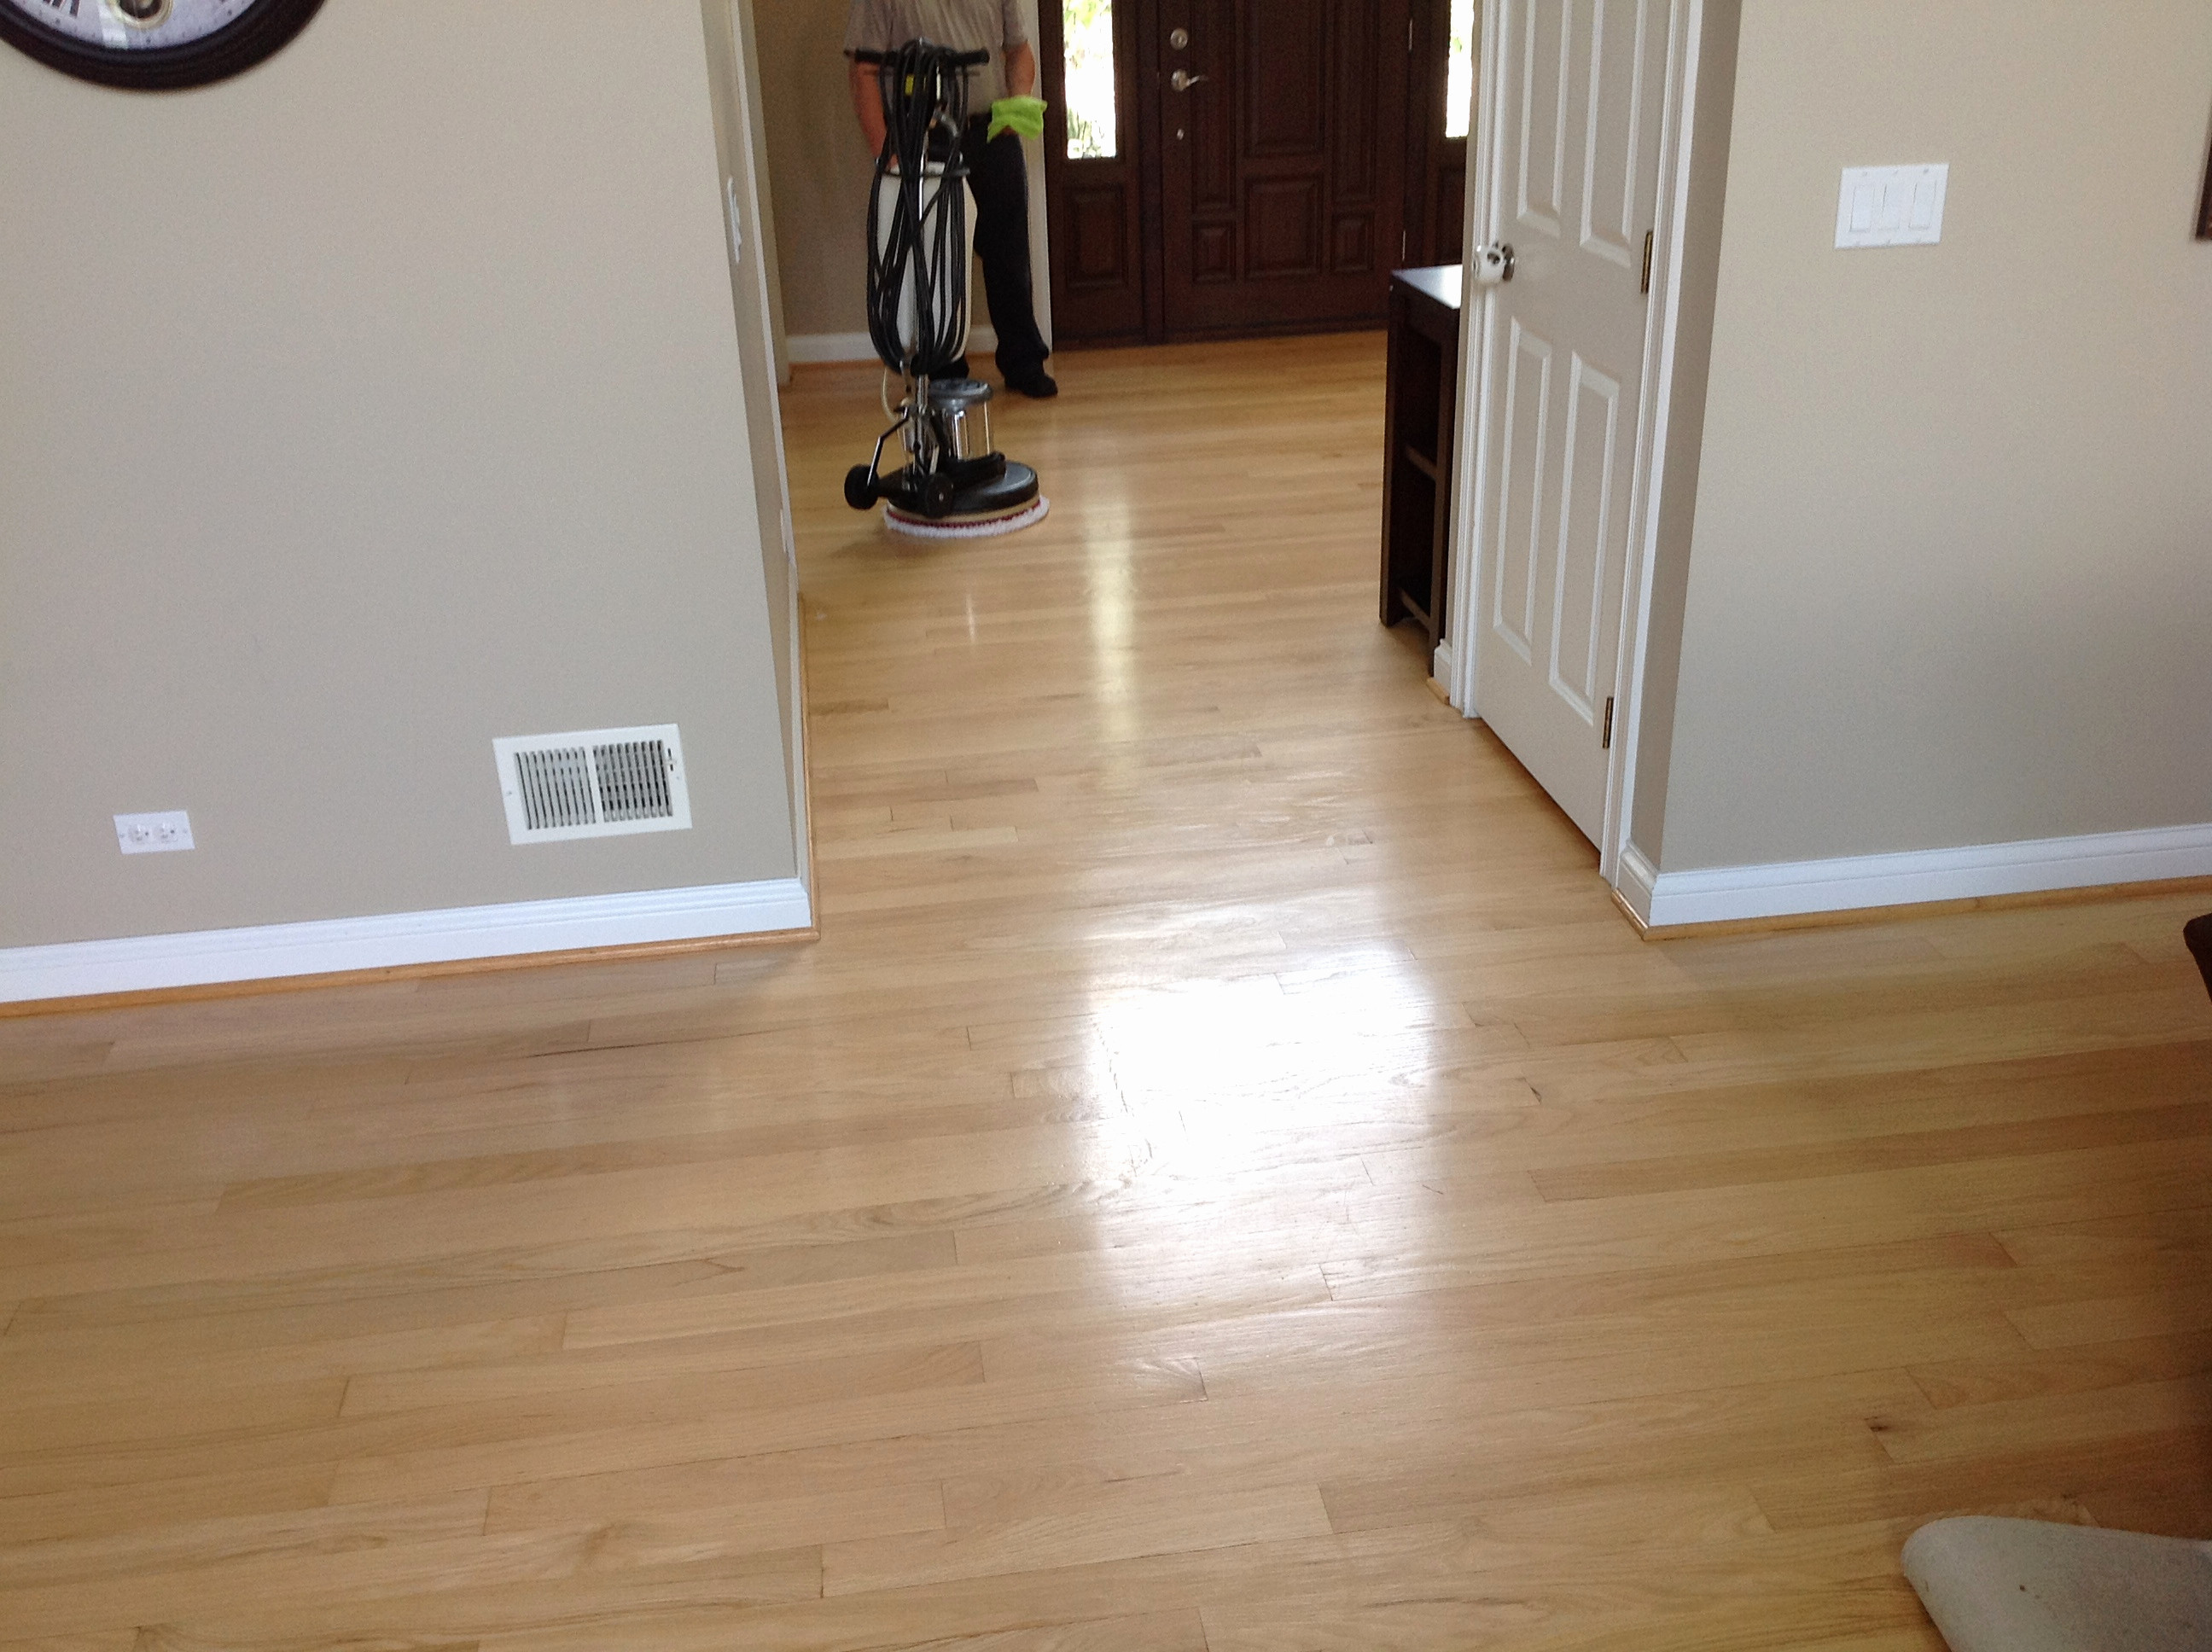 mohawk hardwood flooring care of wood floor cleaner laminate flooring best mop for laminate floors within floor floorod cleaning hardwood carpet lake forest il rare image luxury best wood floor cleaner